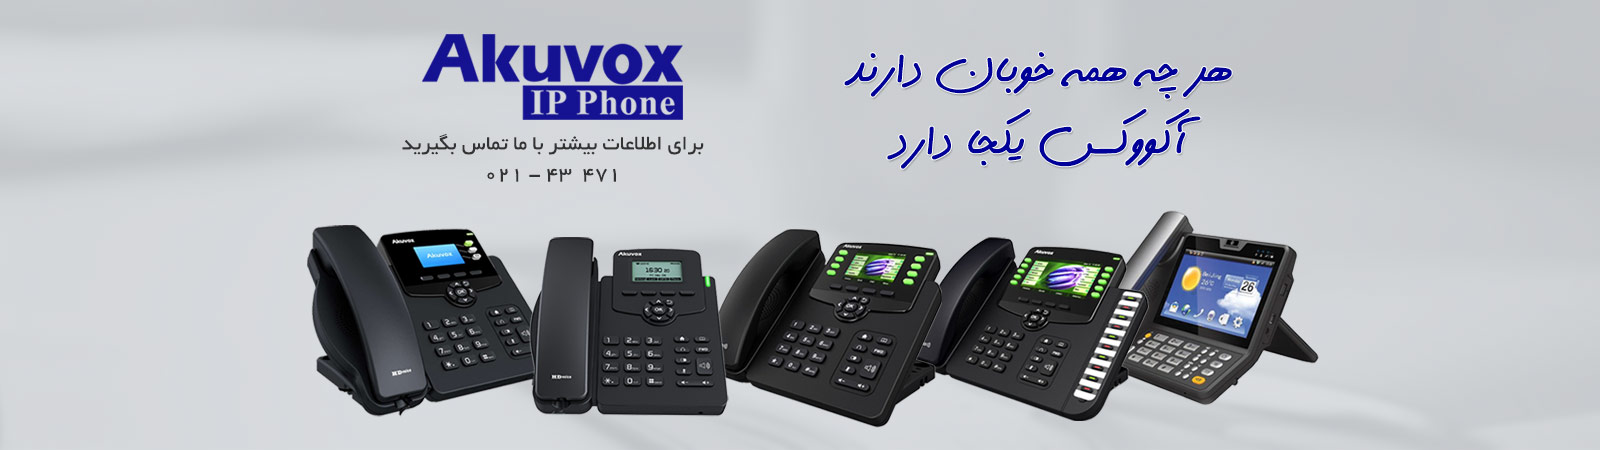 akuvox - ip - phone